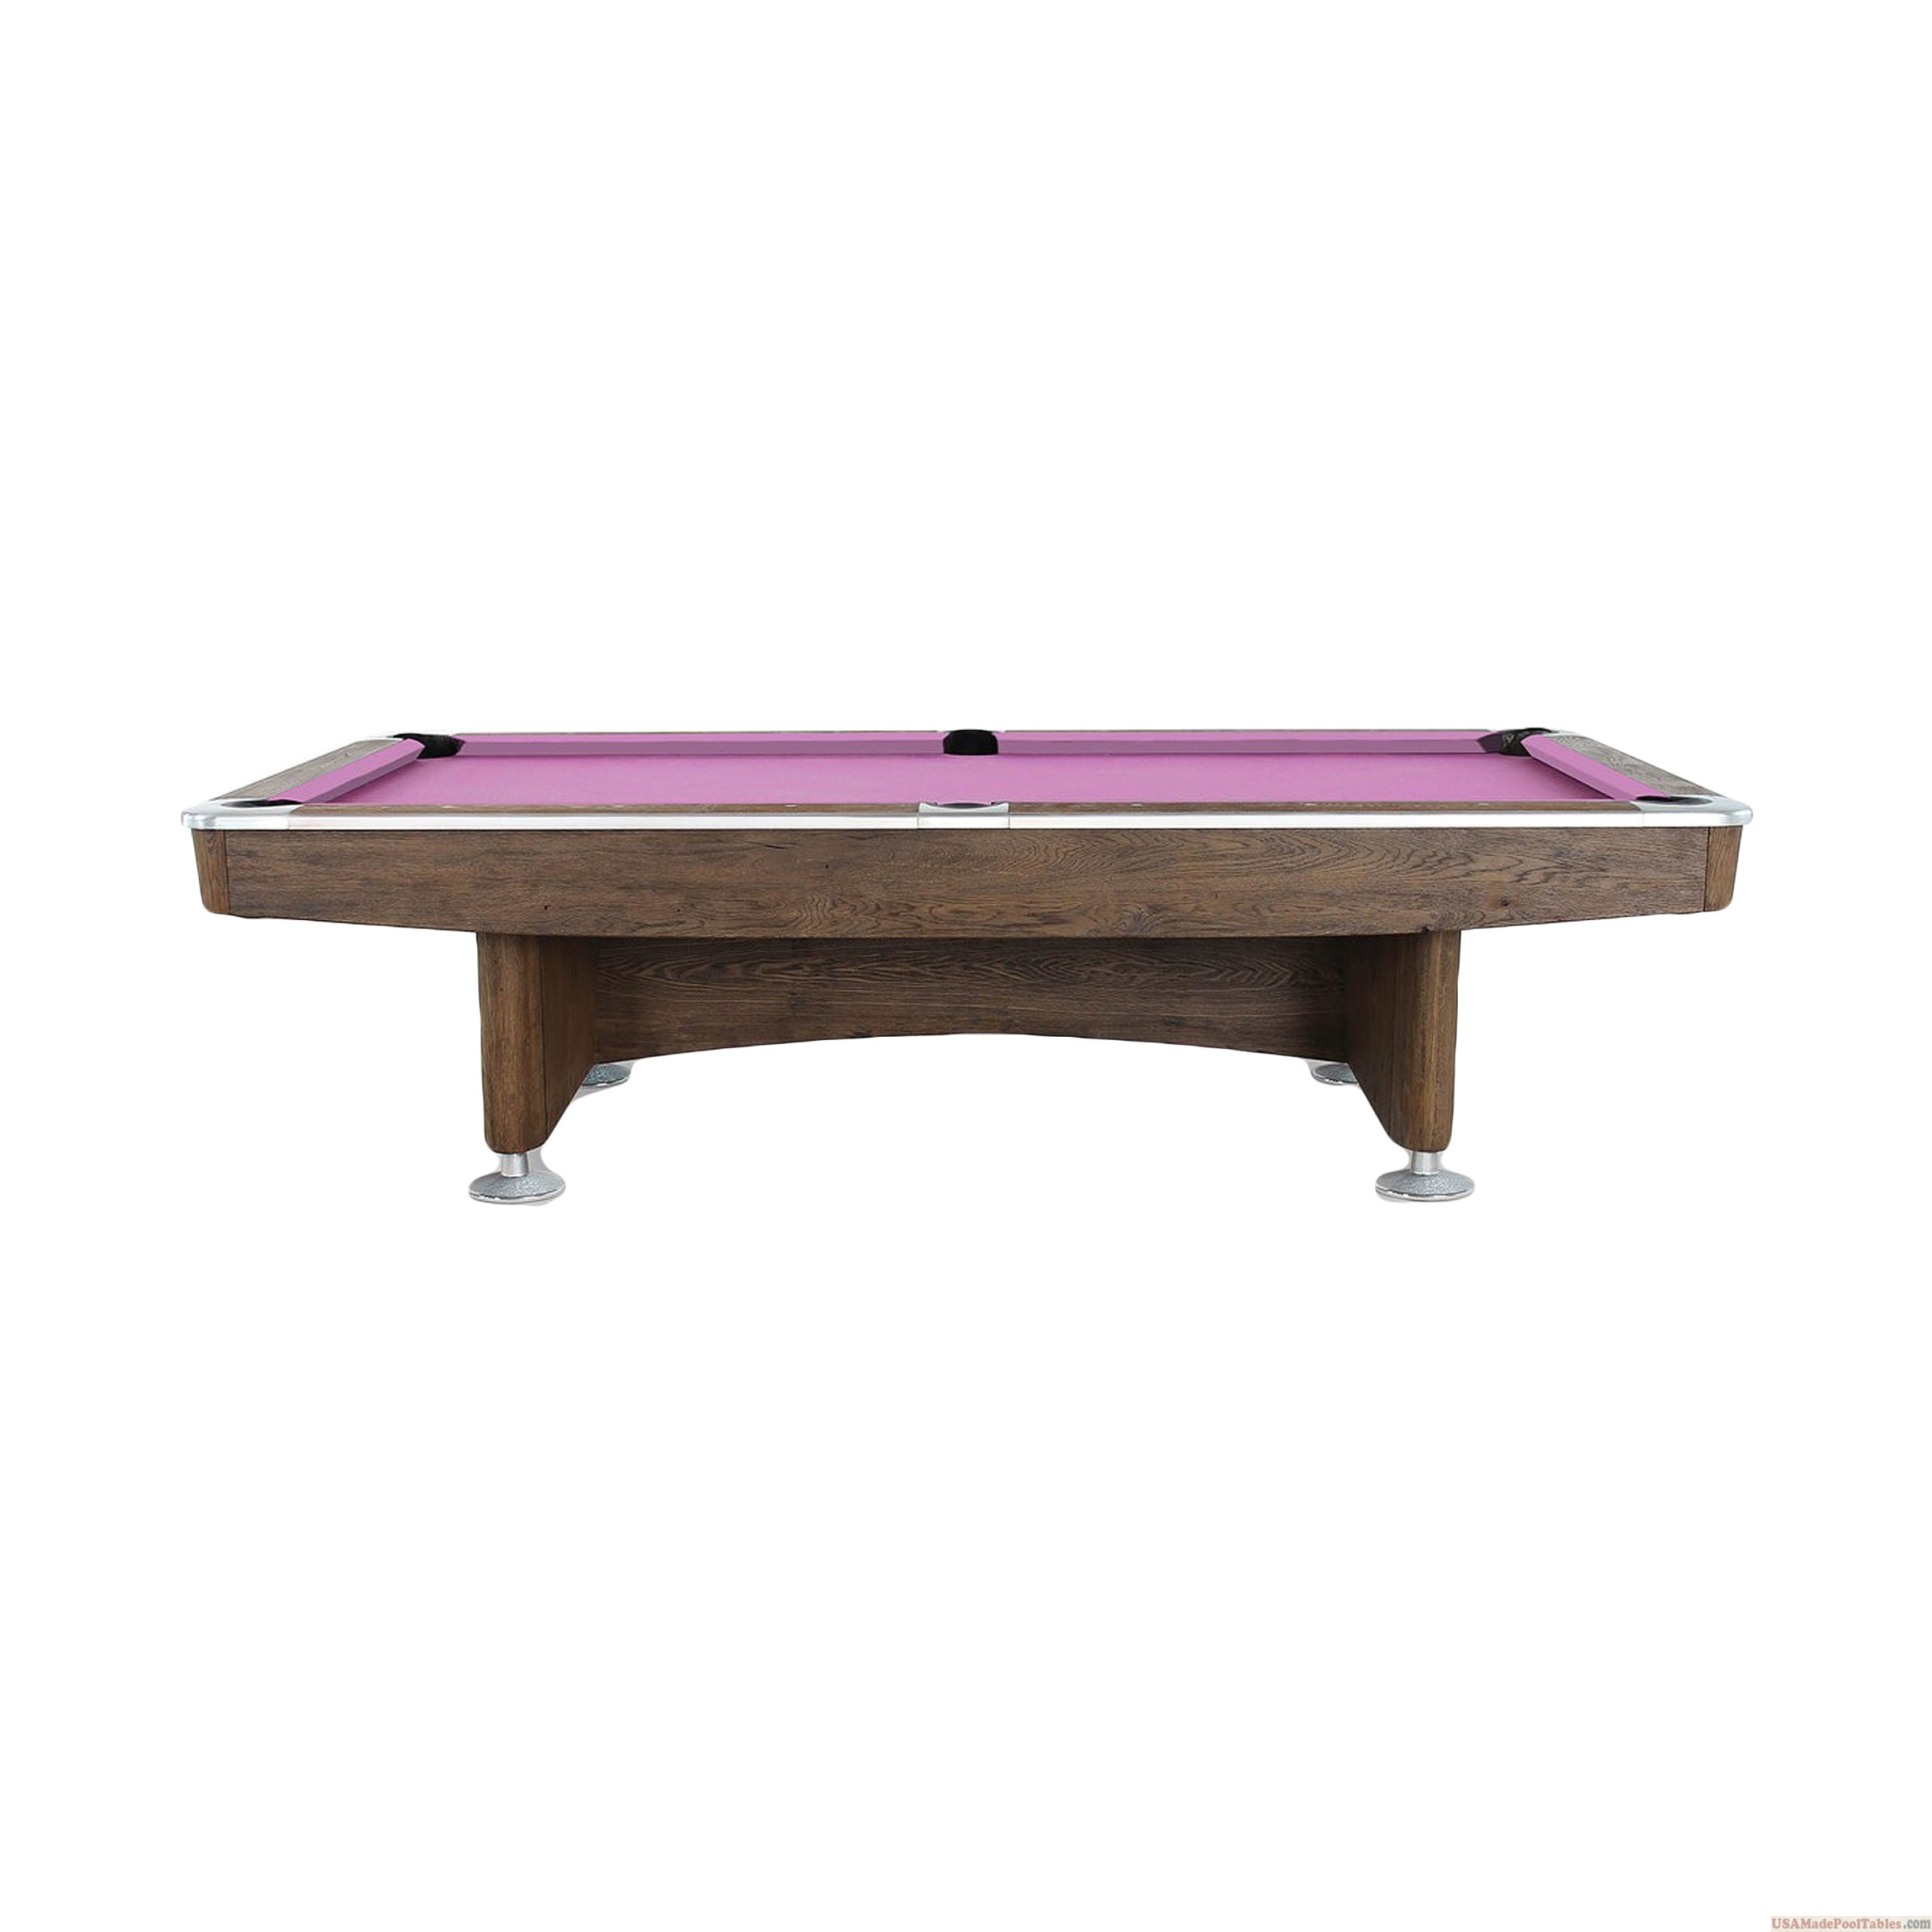 PRO CHALLENGER COMMERCIAL POOL TABLE